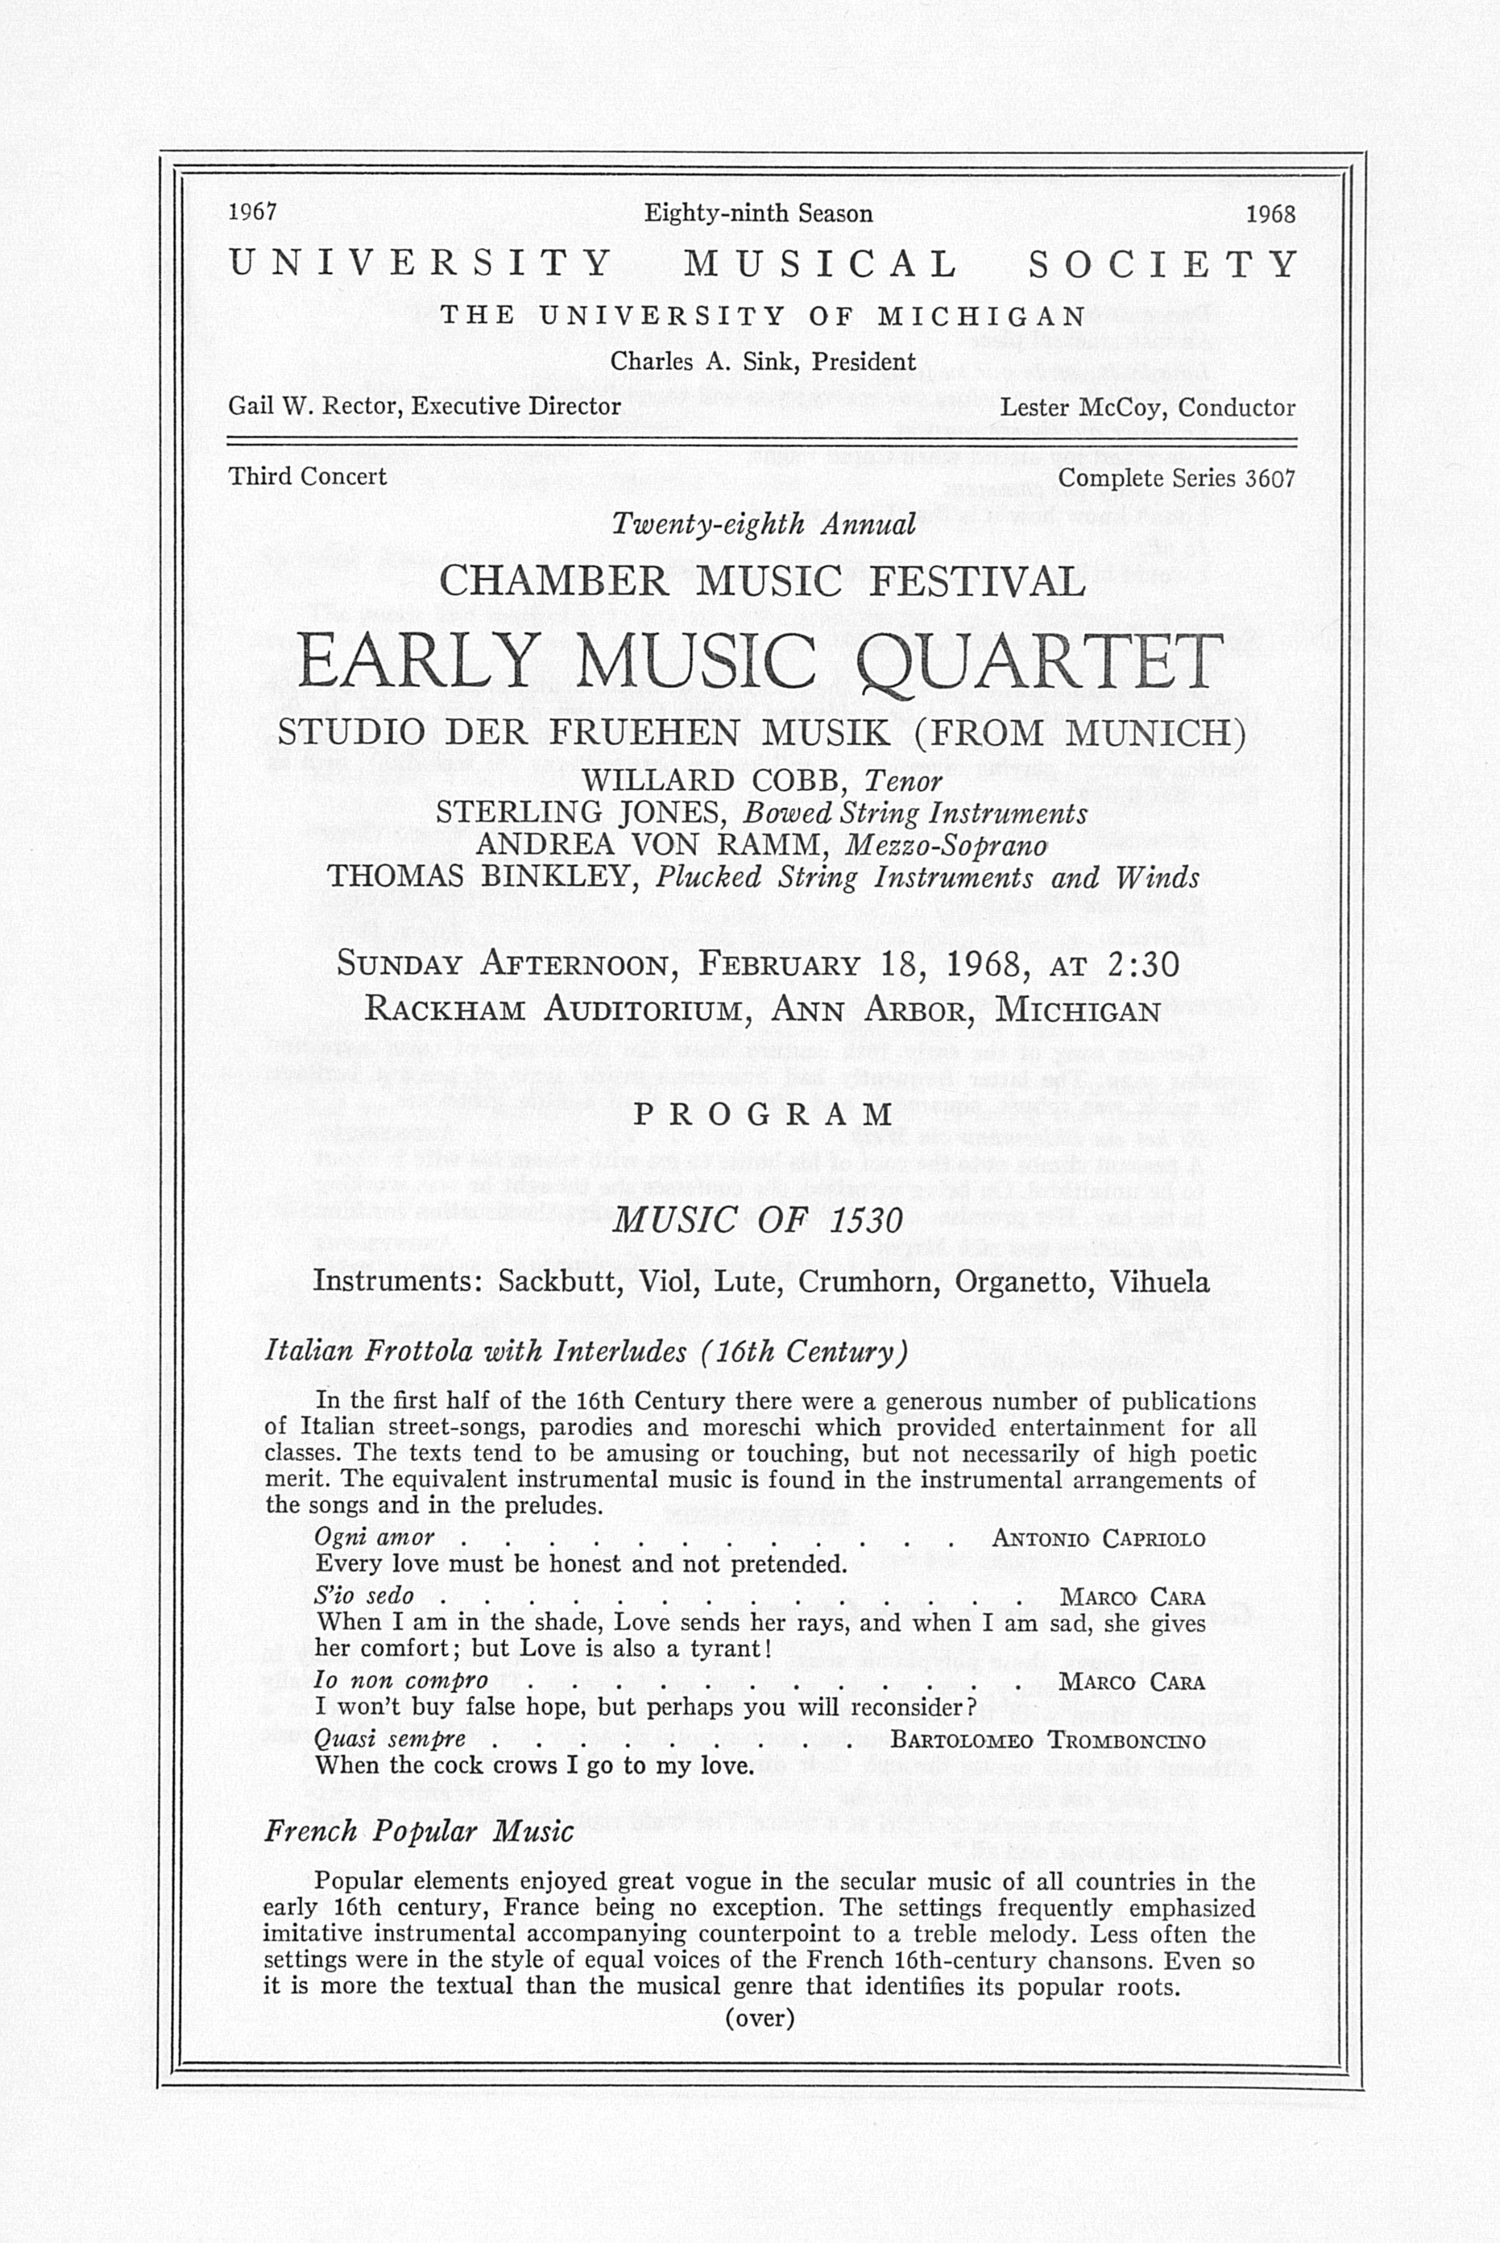 UMS Concert Program, February 18, 1968: Twenty-eighth Annual Chamber Music Festival -- Early Music Quartet image